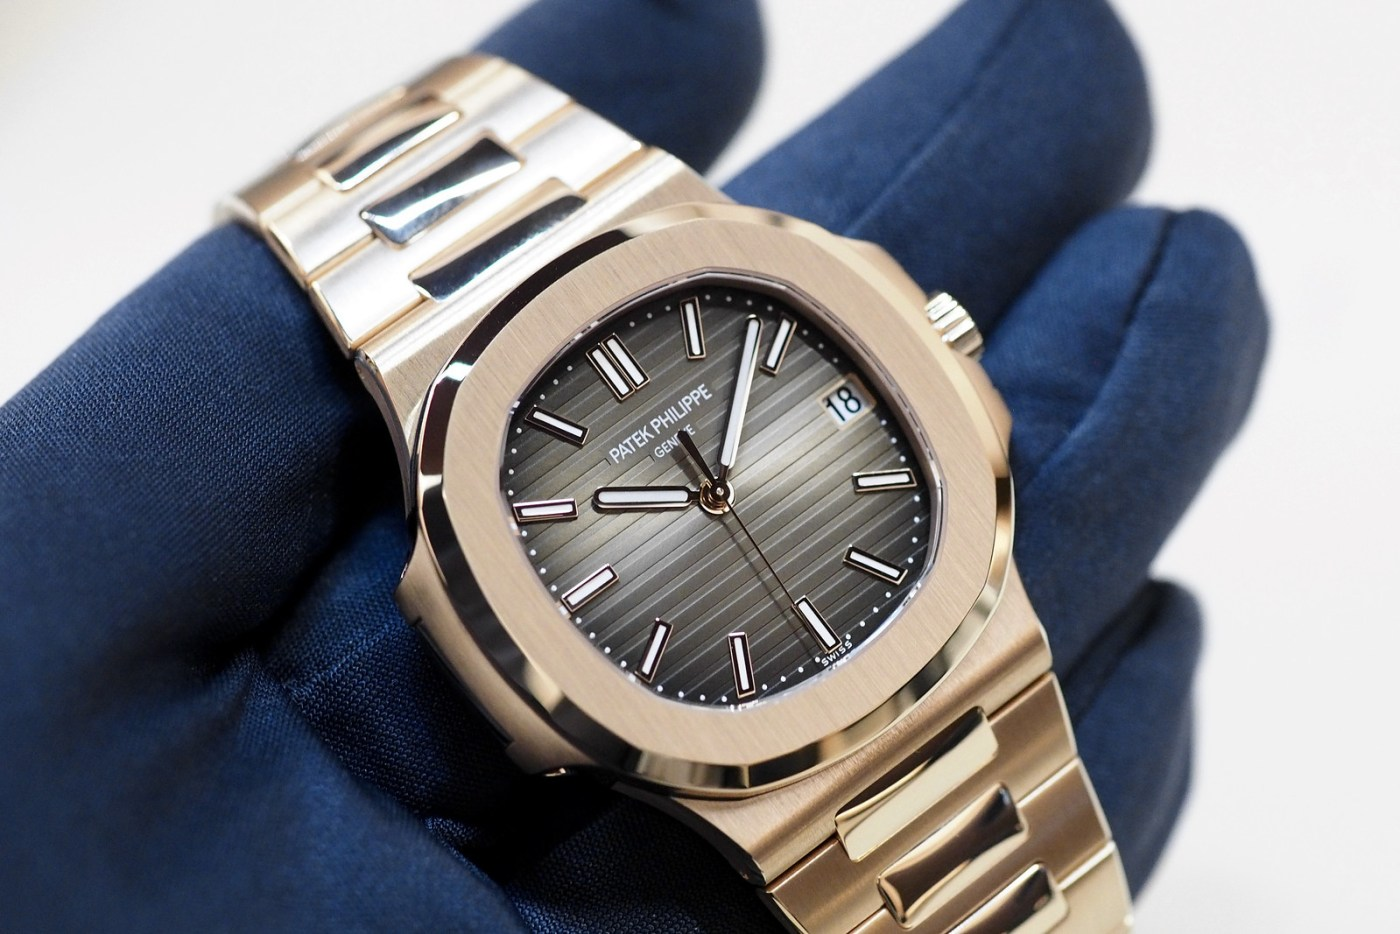 Patek Philippe Nautilus in solid gold